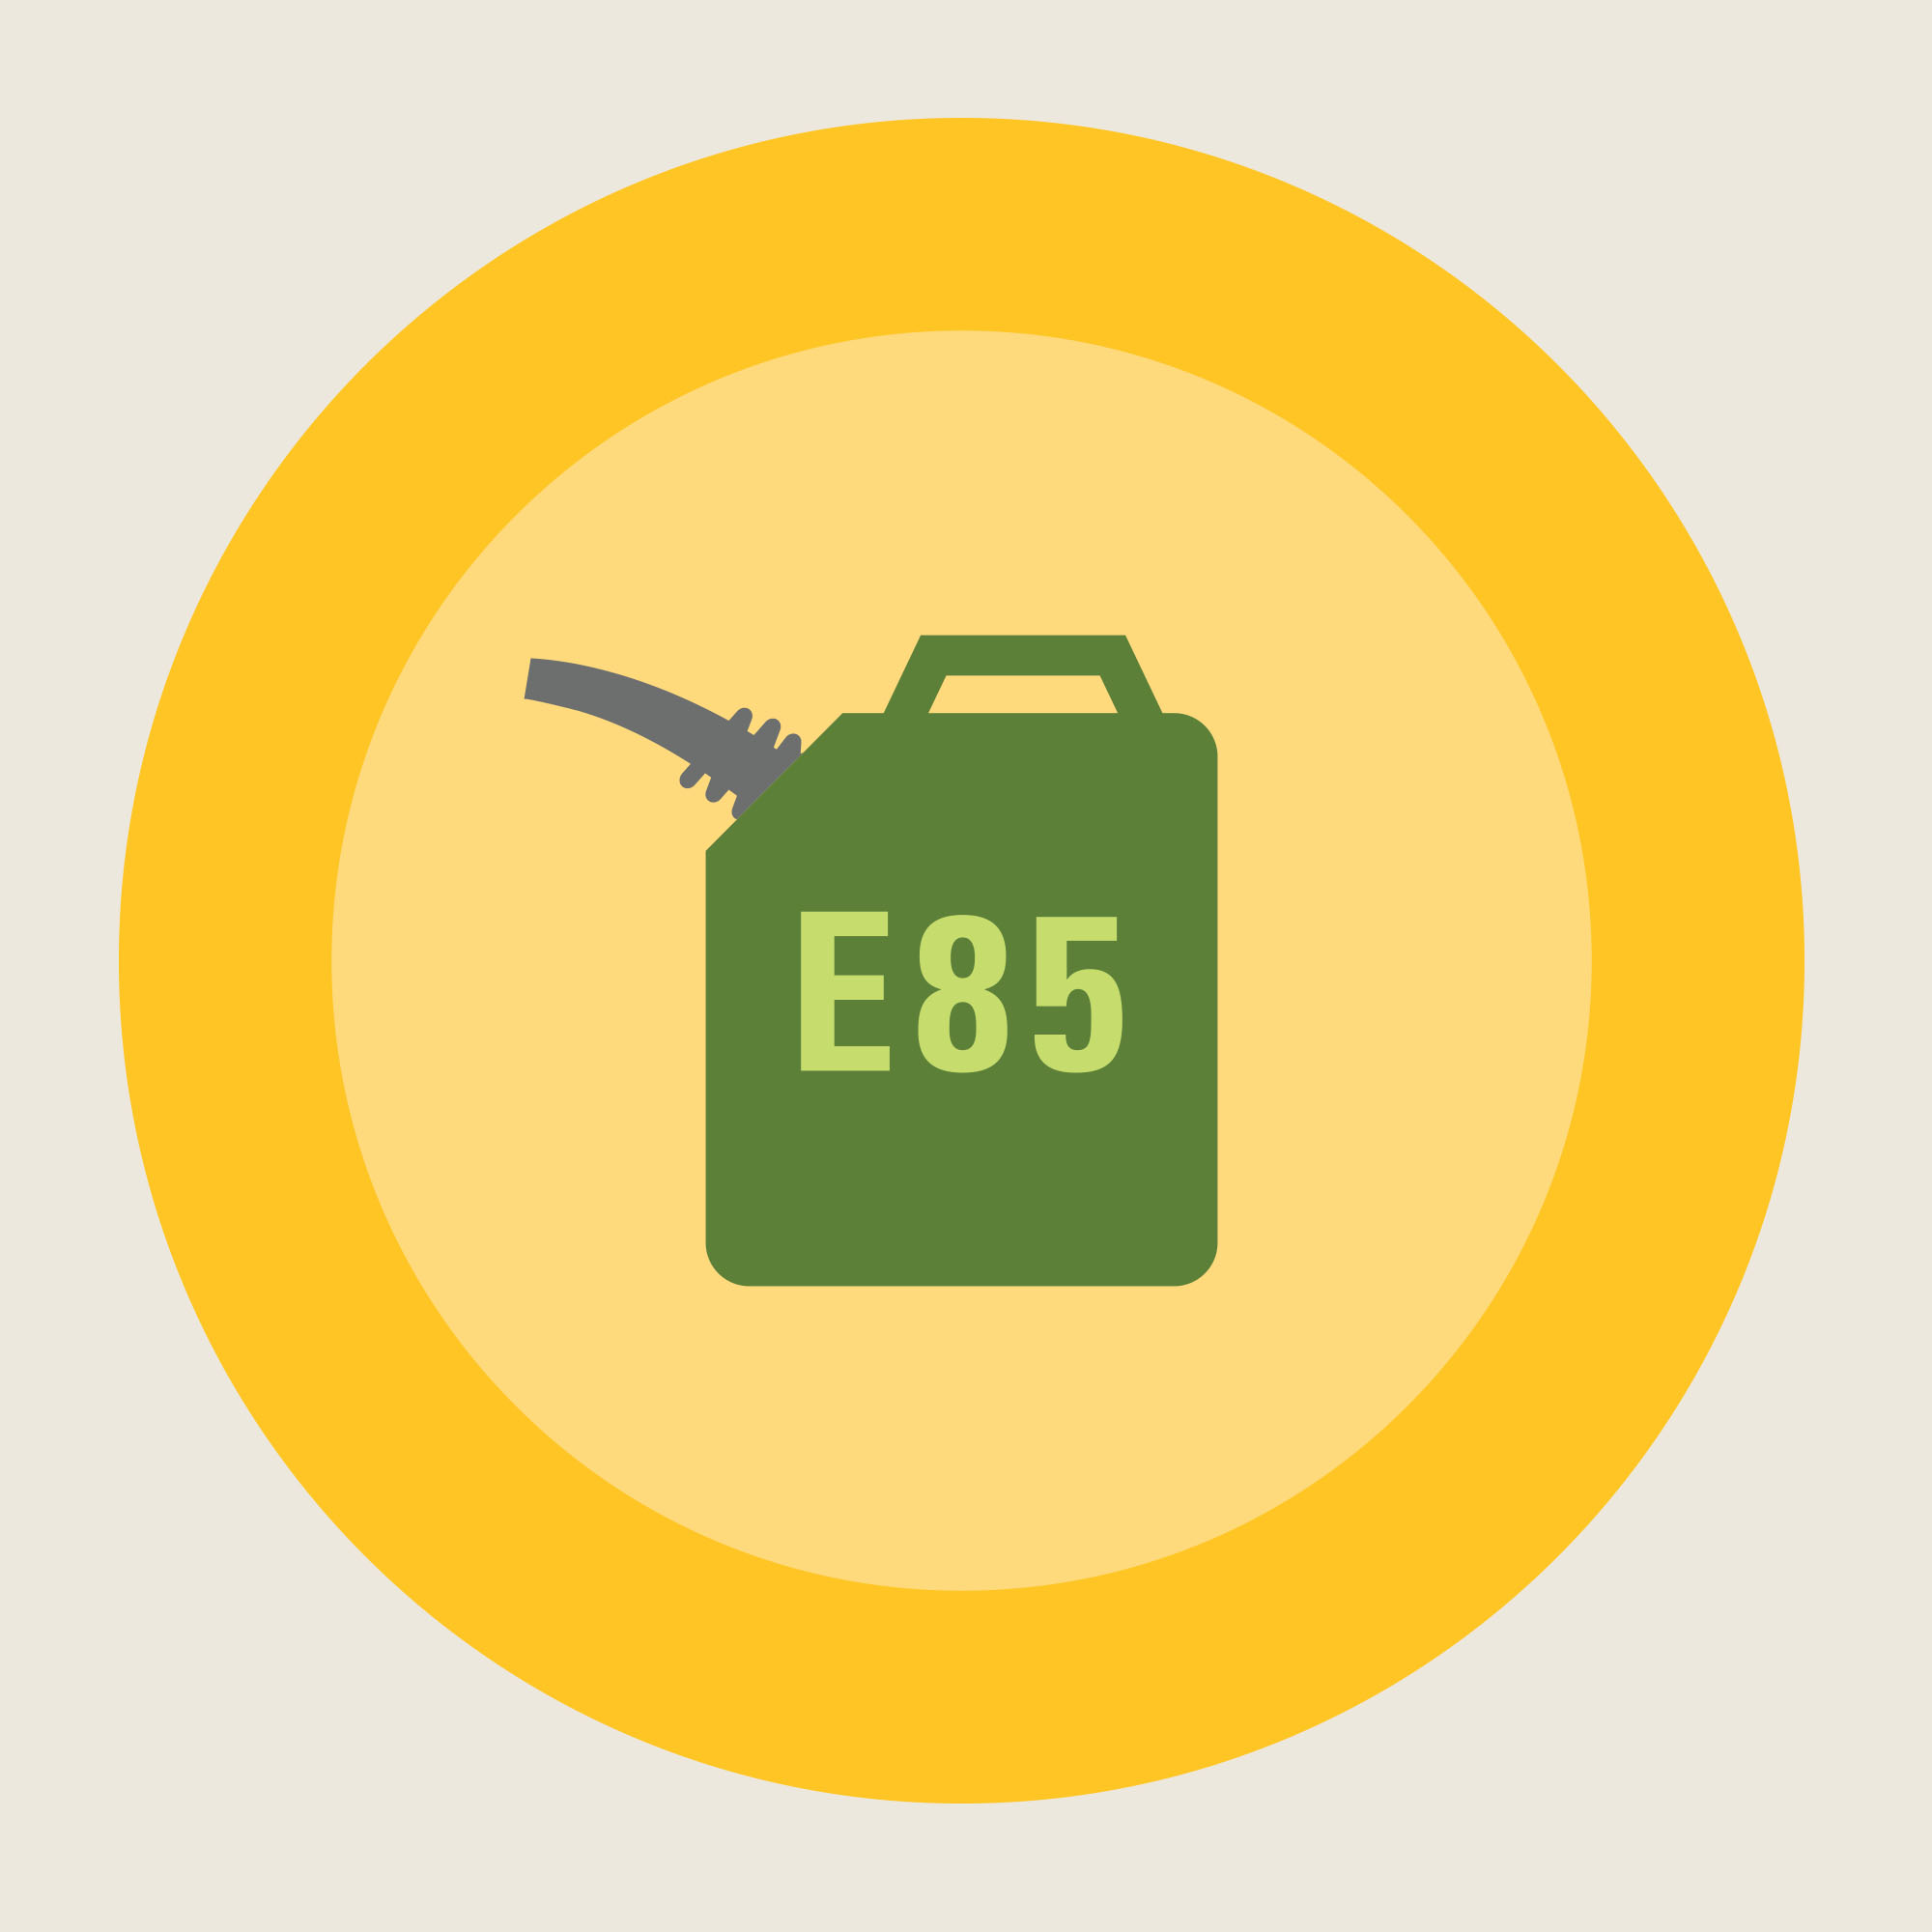 e85 high performance for everyone american coalition for ethanol. Black Bedroom Furniture Sets. Home Design Ideas